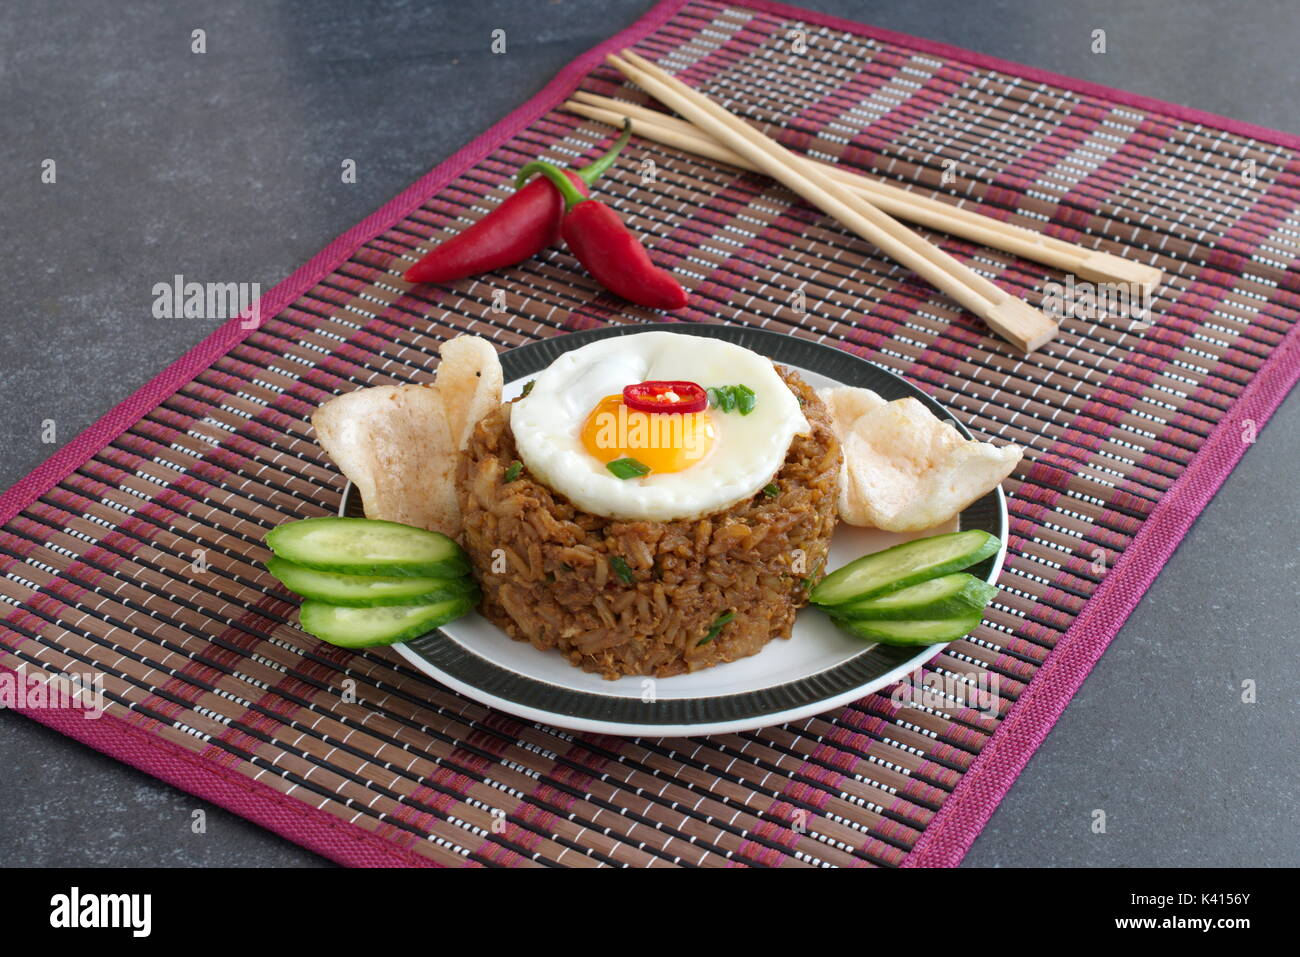 Nasi goreng fried rice with shrimps and egg garnished with fresh cucumber slices and prawn crackers on a plate on a cloth. Asian food - Stock Image